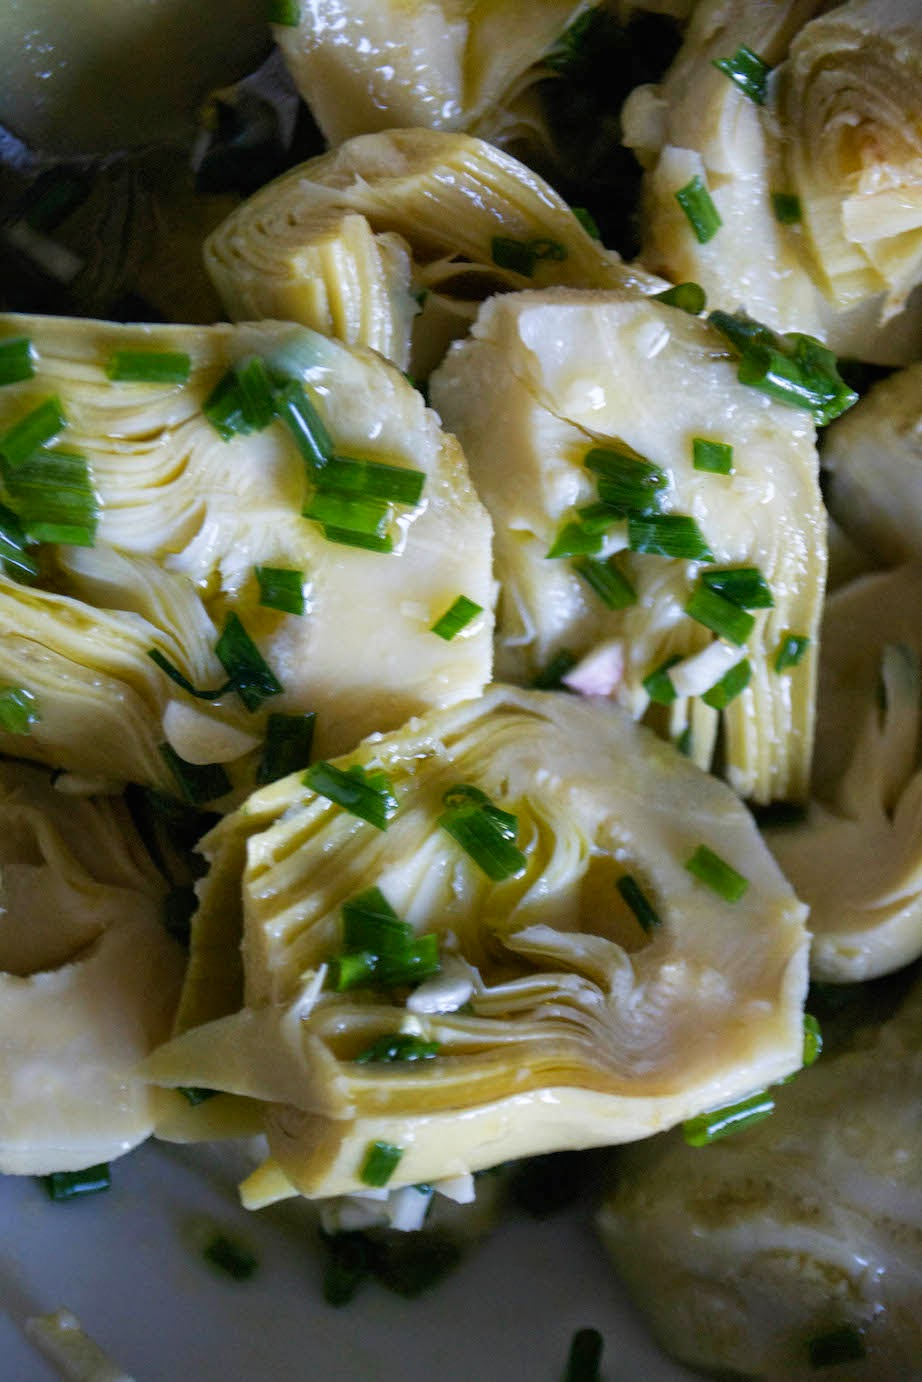 So. Here's something new. Artichoke hearts with garlic and chives.